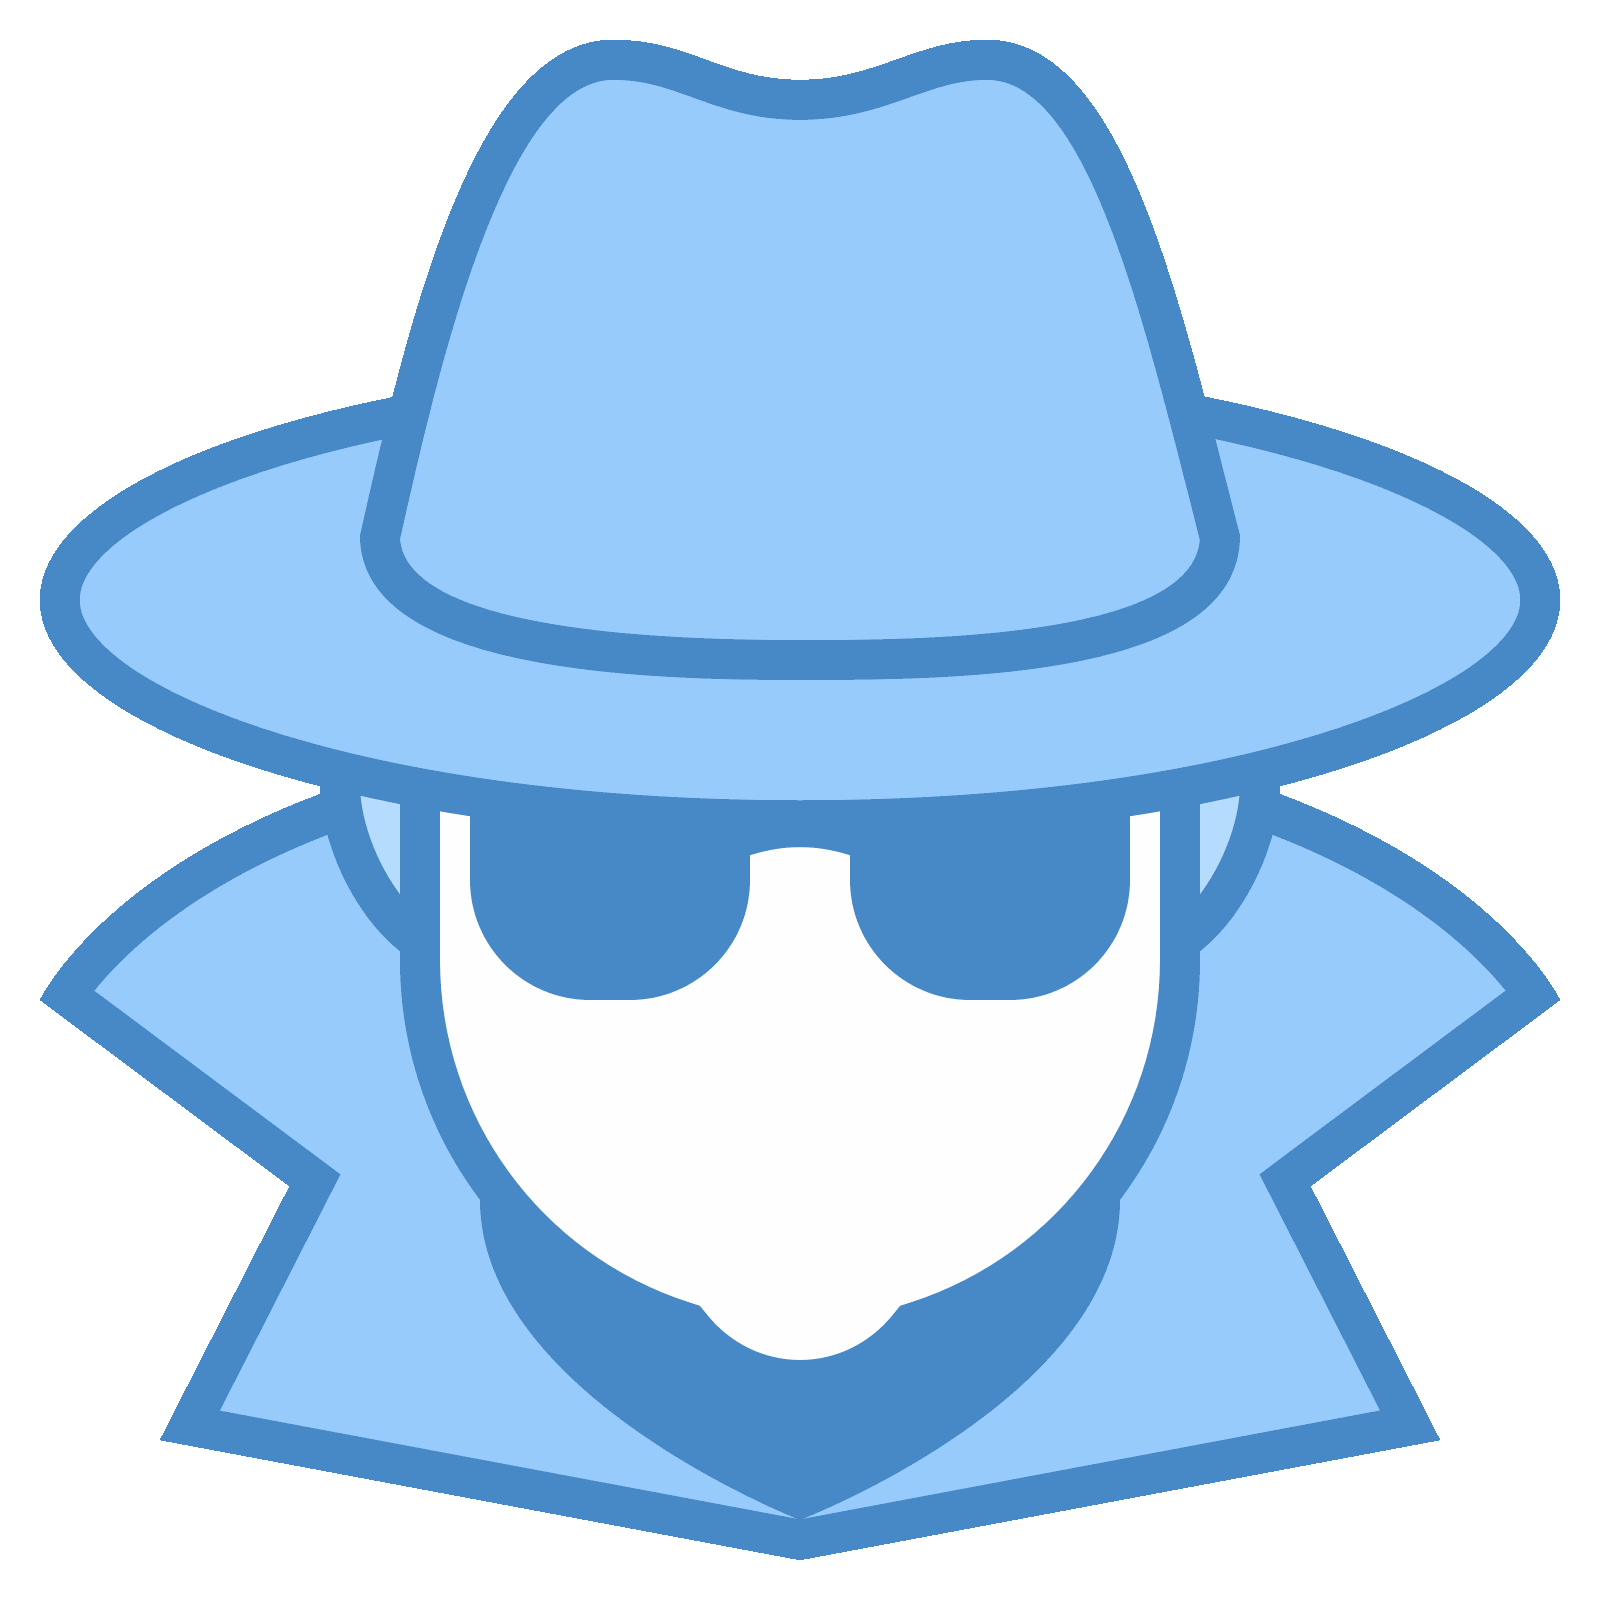 Fedora clipart vector. Spy icon free download